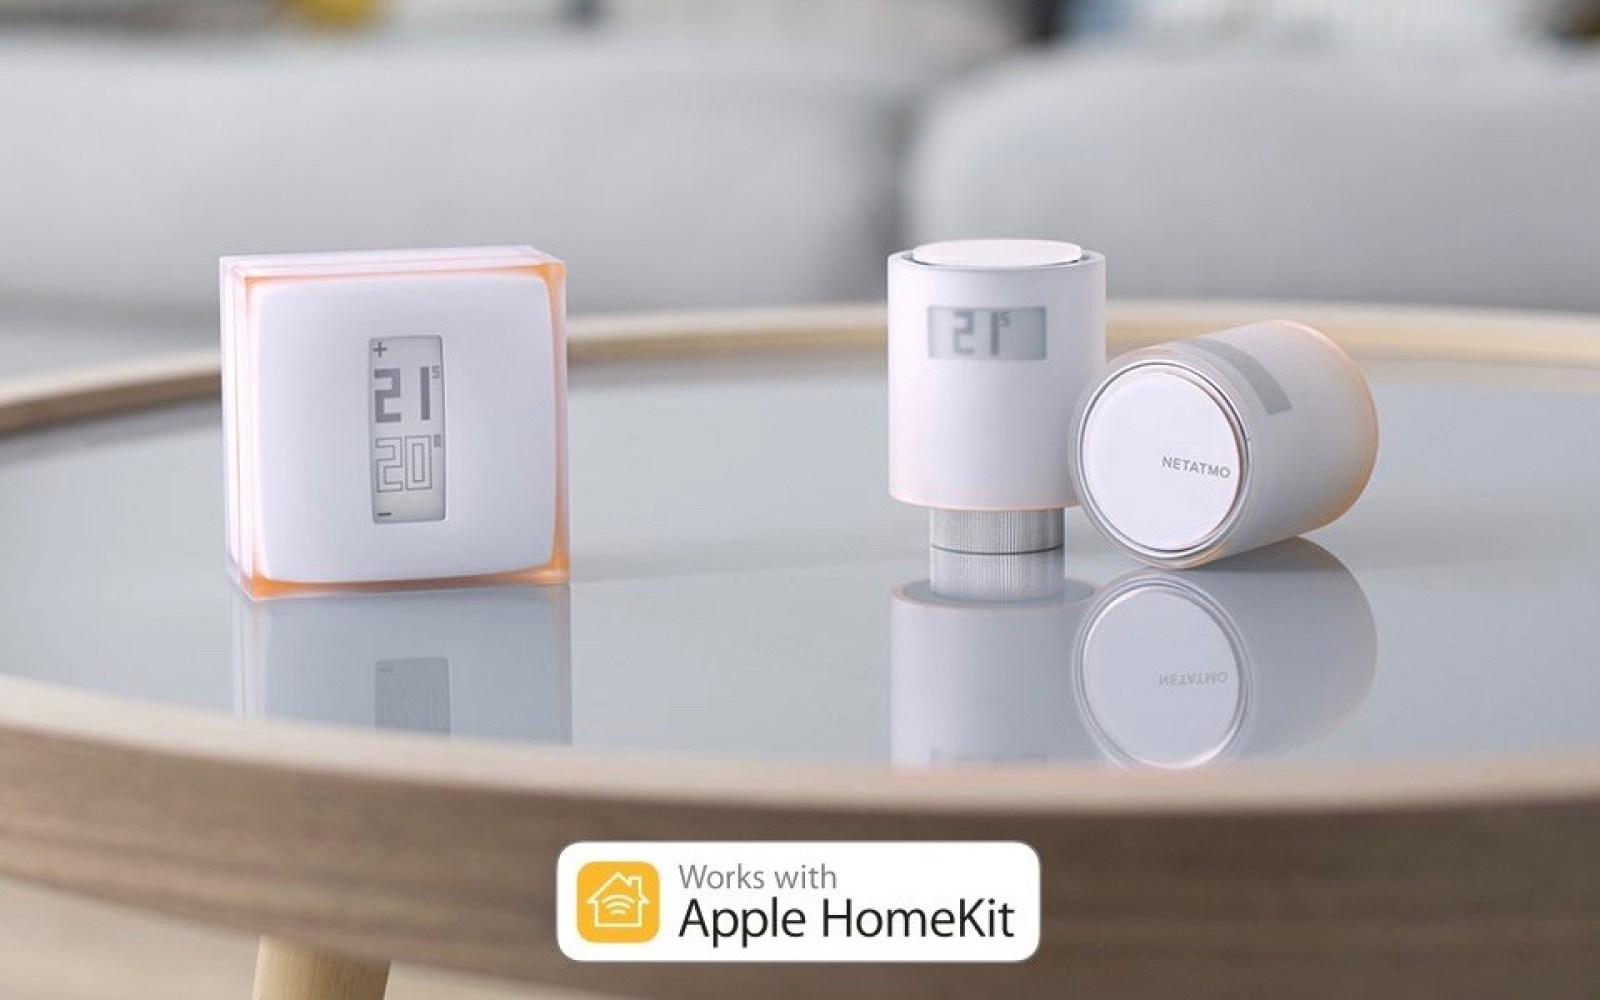 Netatmo's Smart Thermostat and new Smart Radiator Valves bring HomeKit heating and cooling to Europe